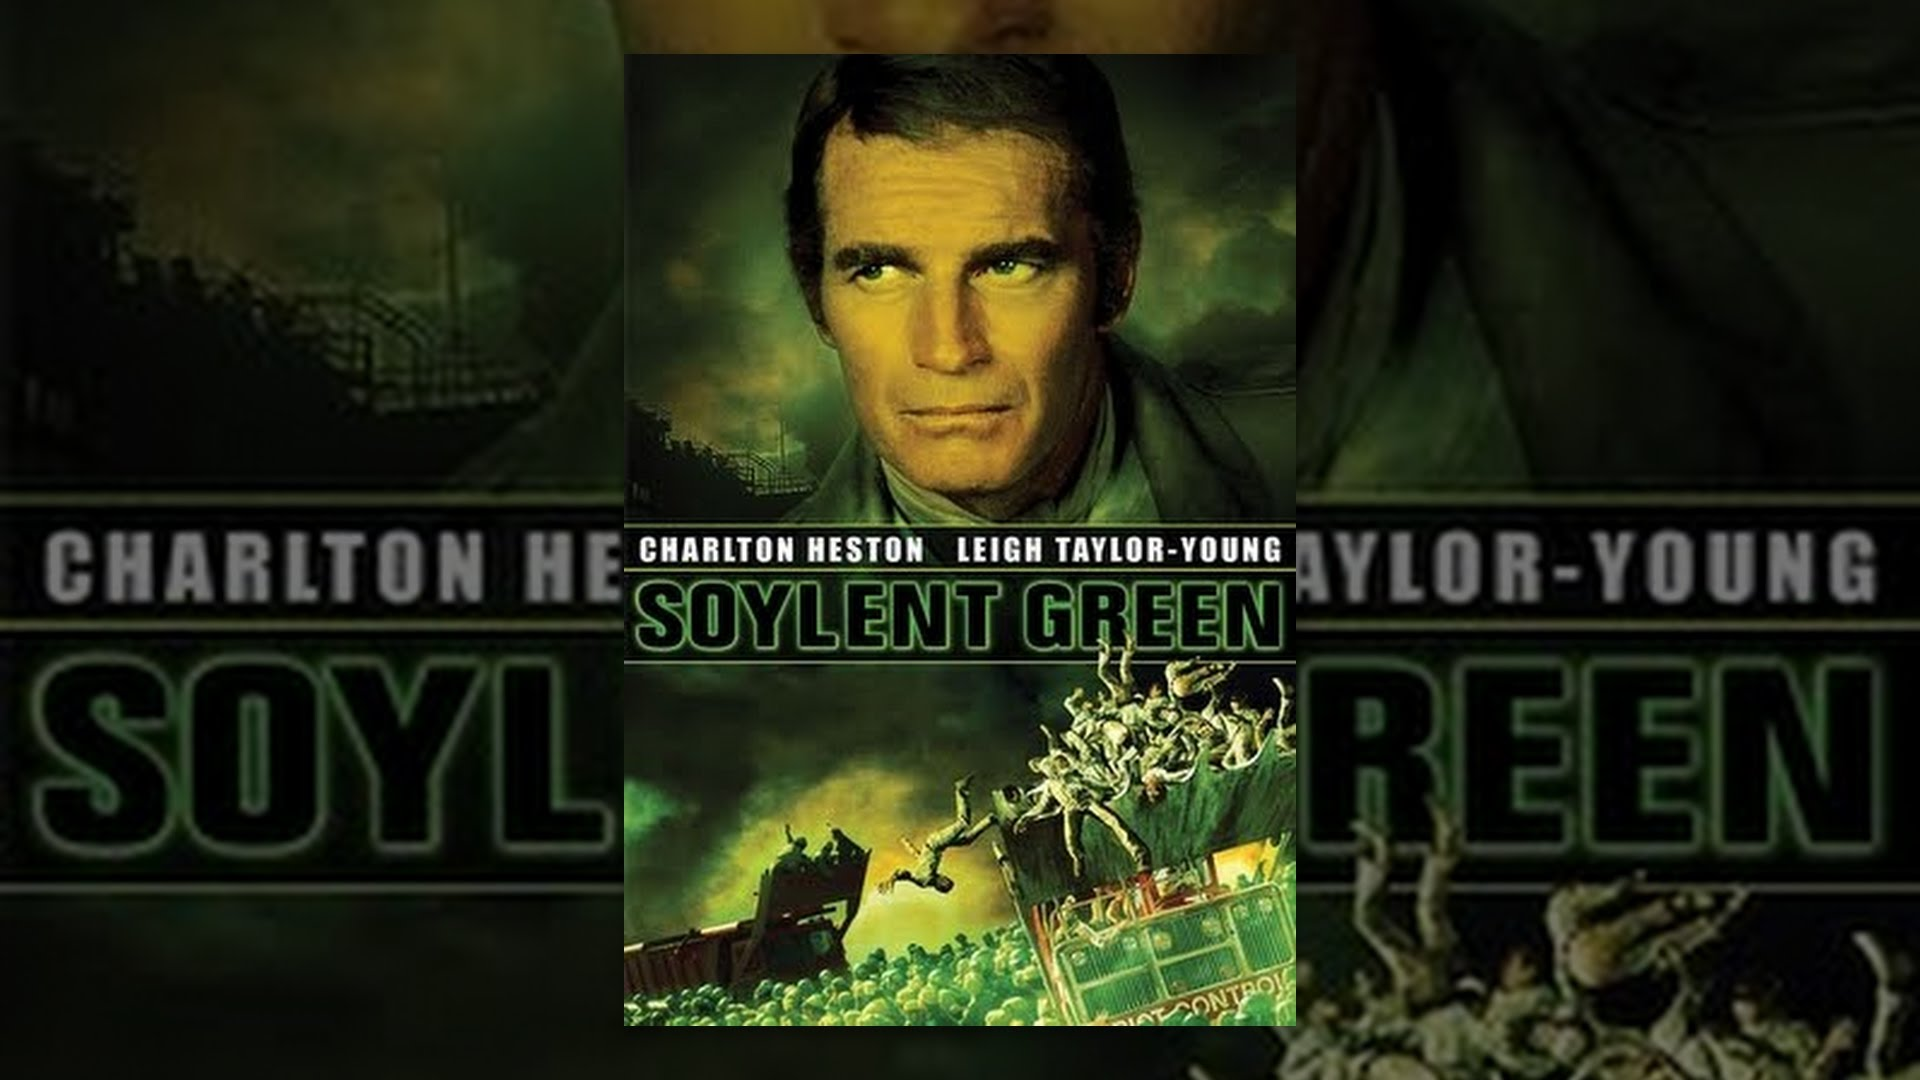 The movie soylent green